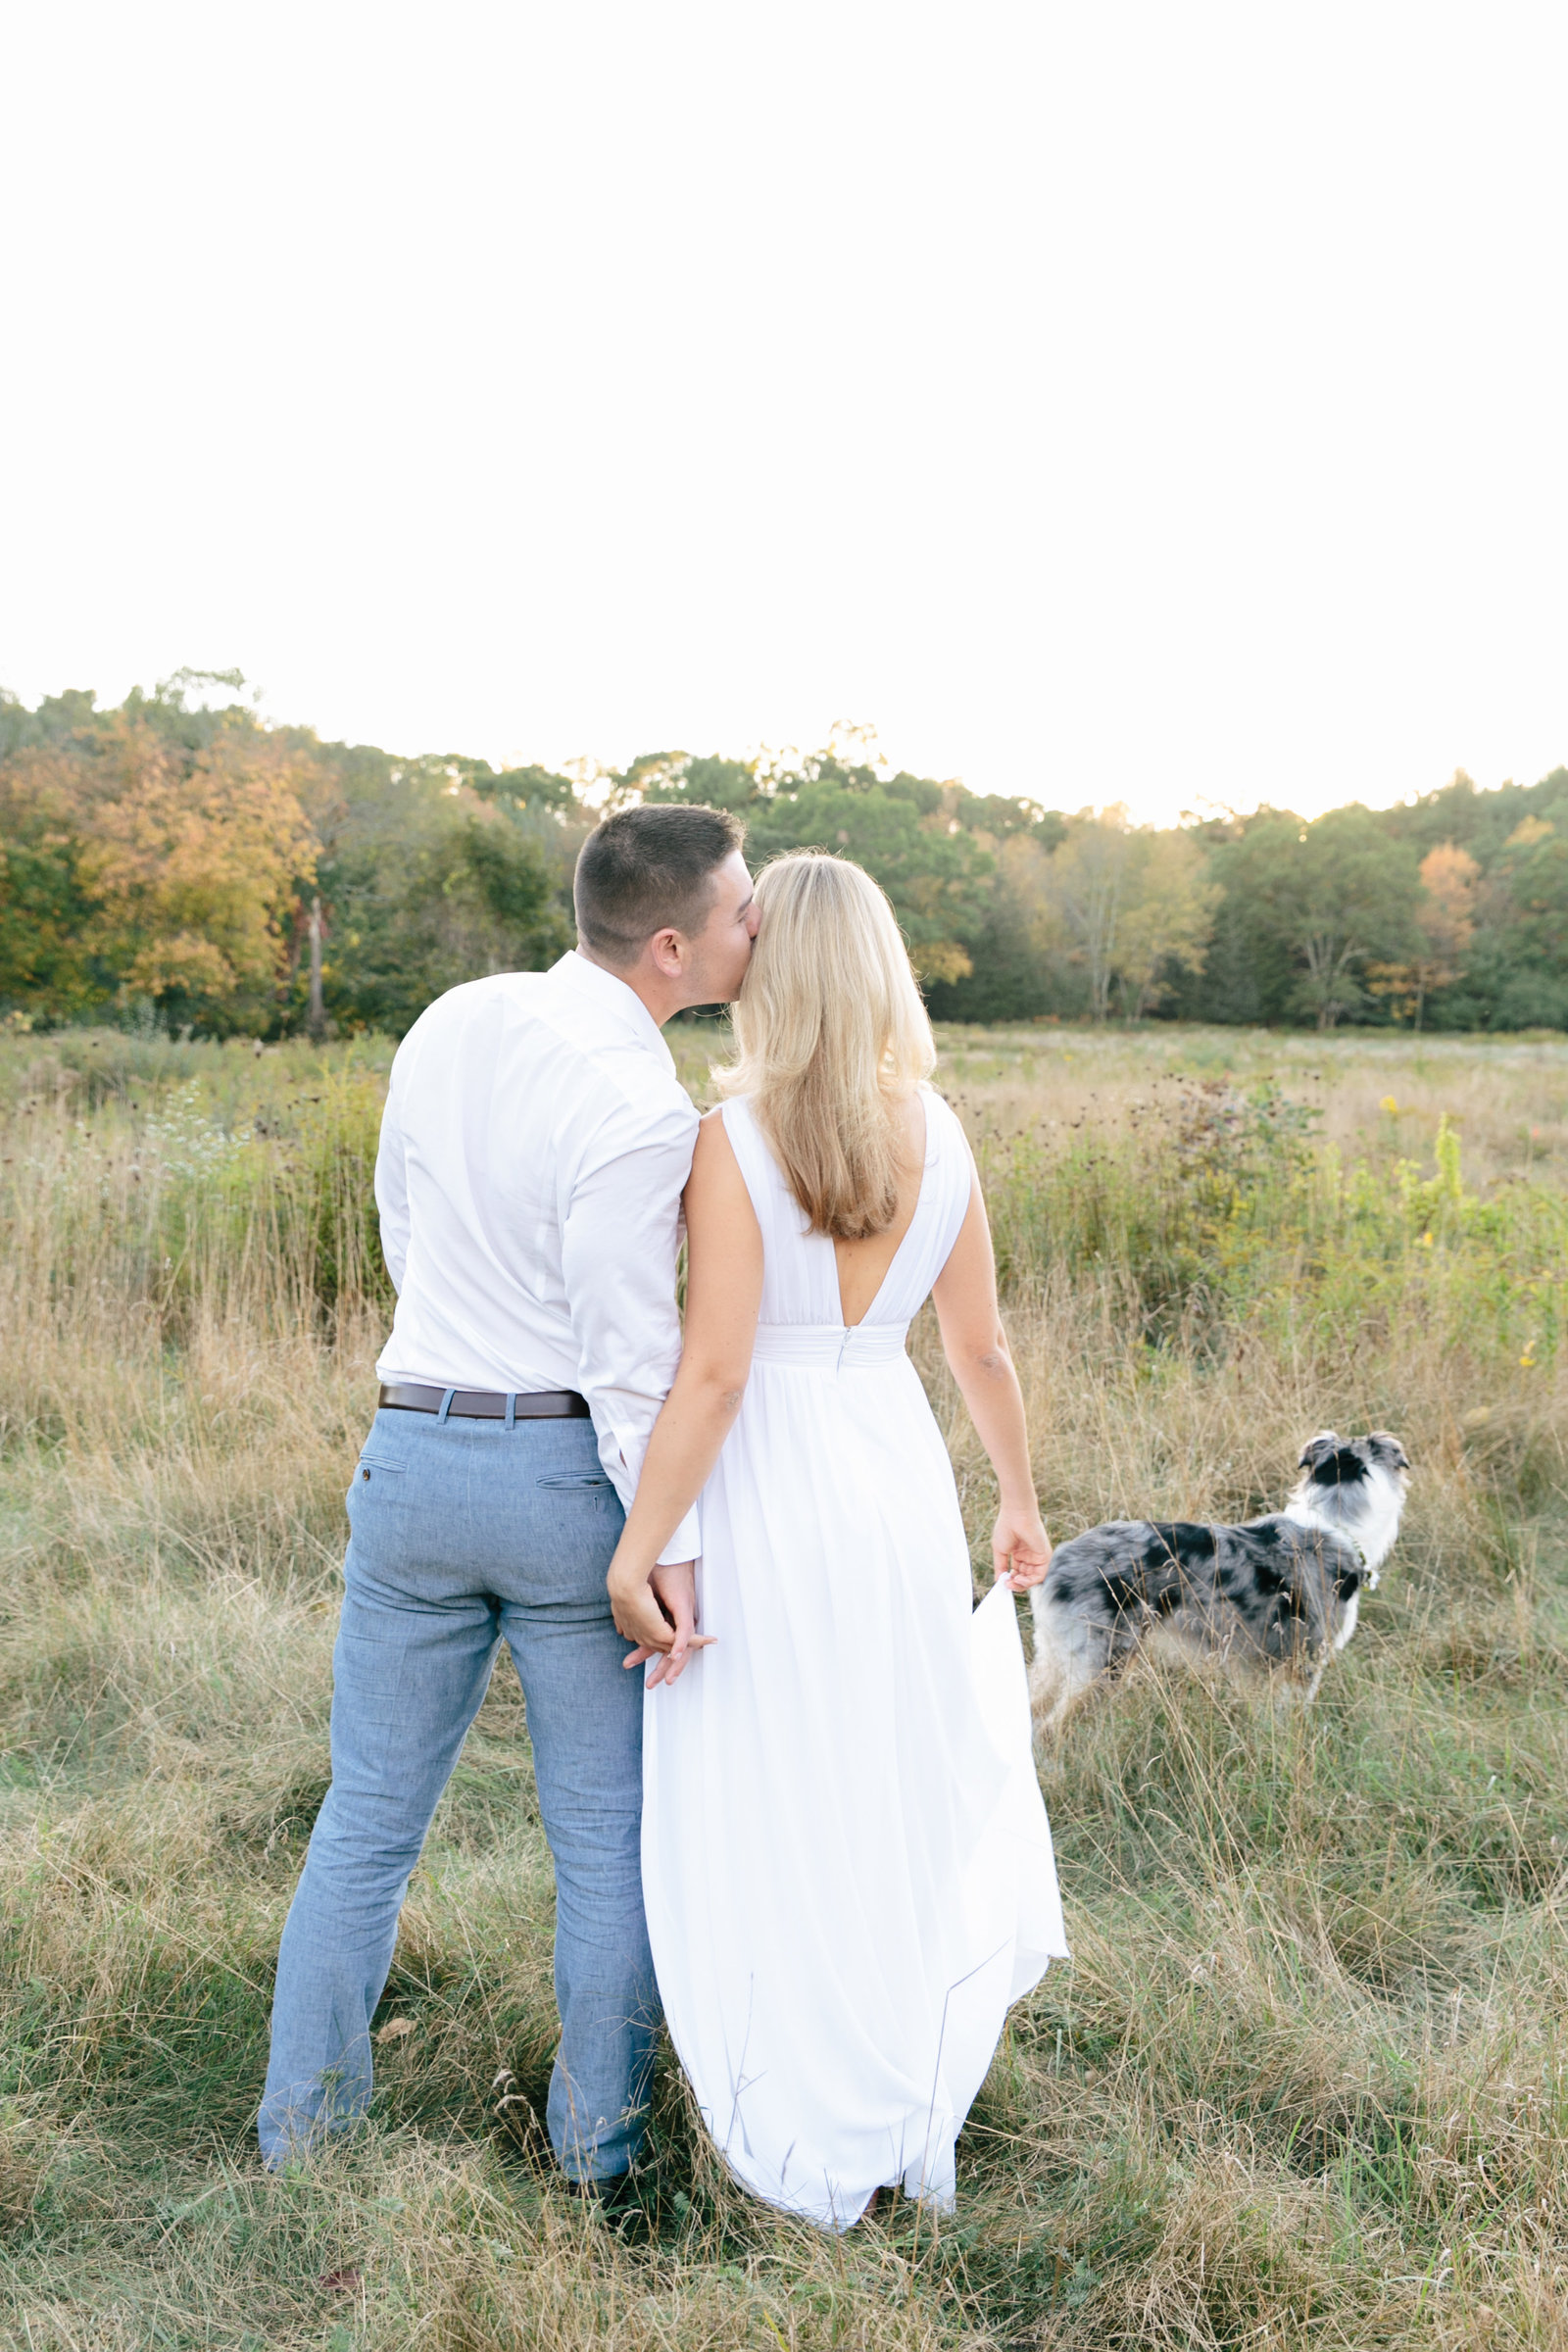 birchwold-farm-engagement-photography-wrentham-massachusetts0921